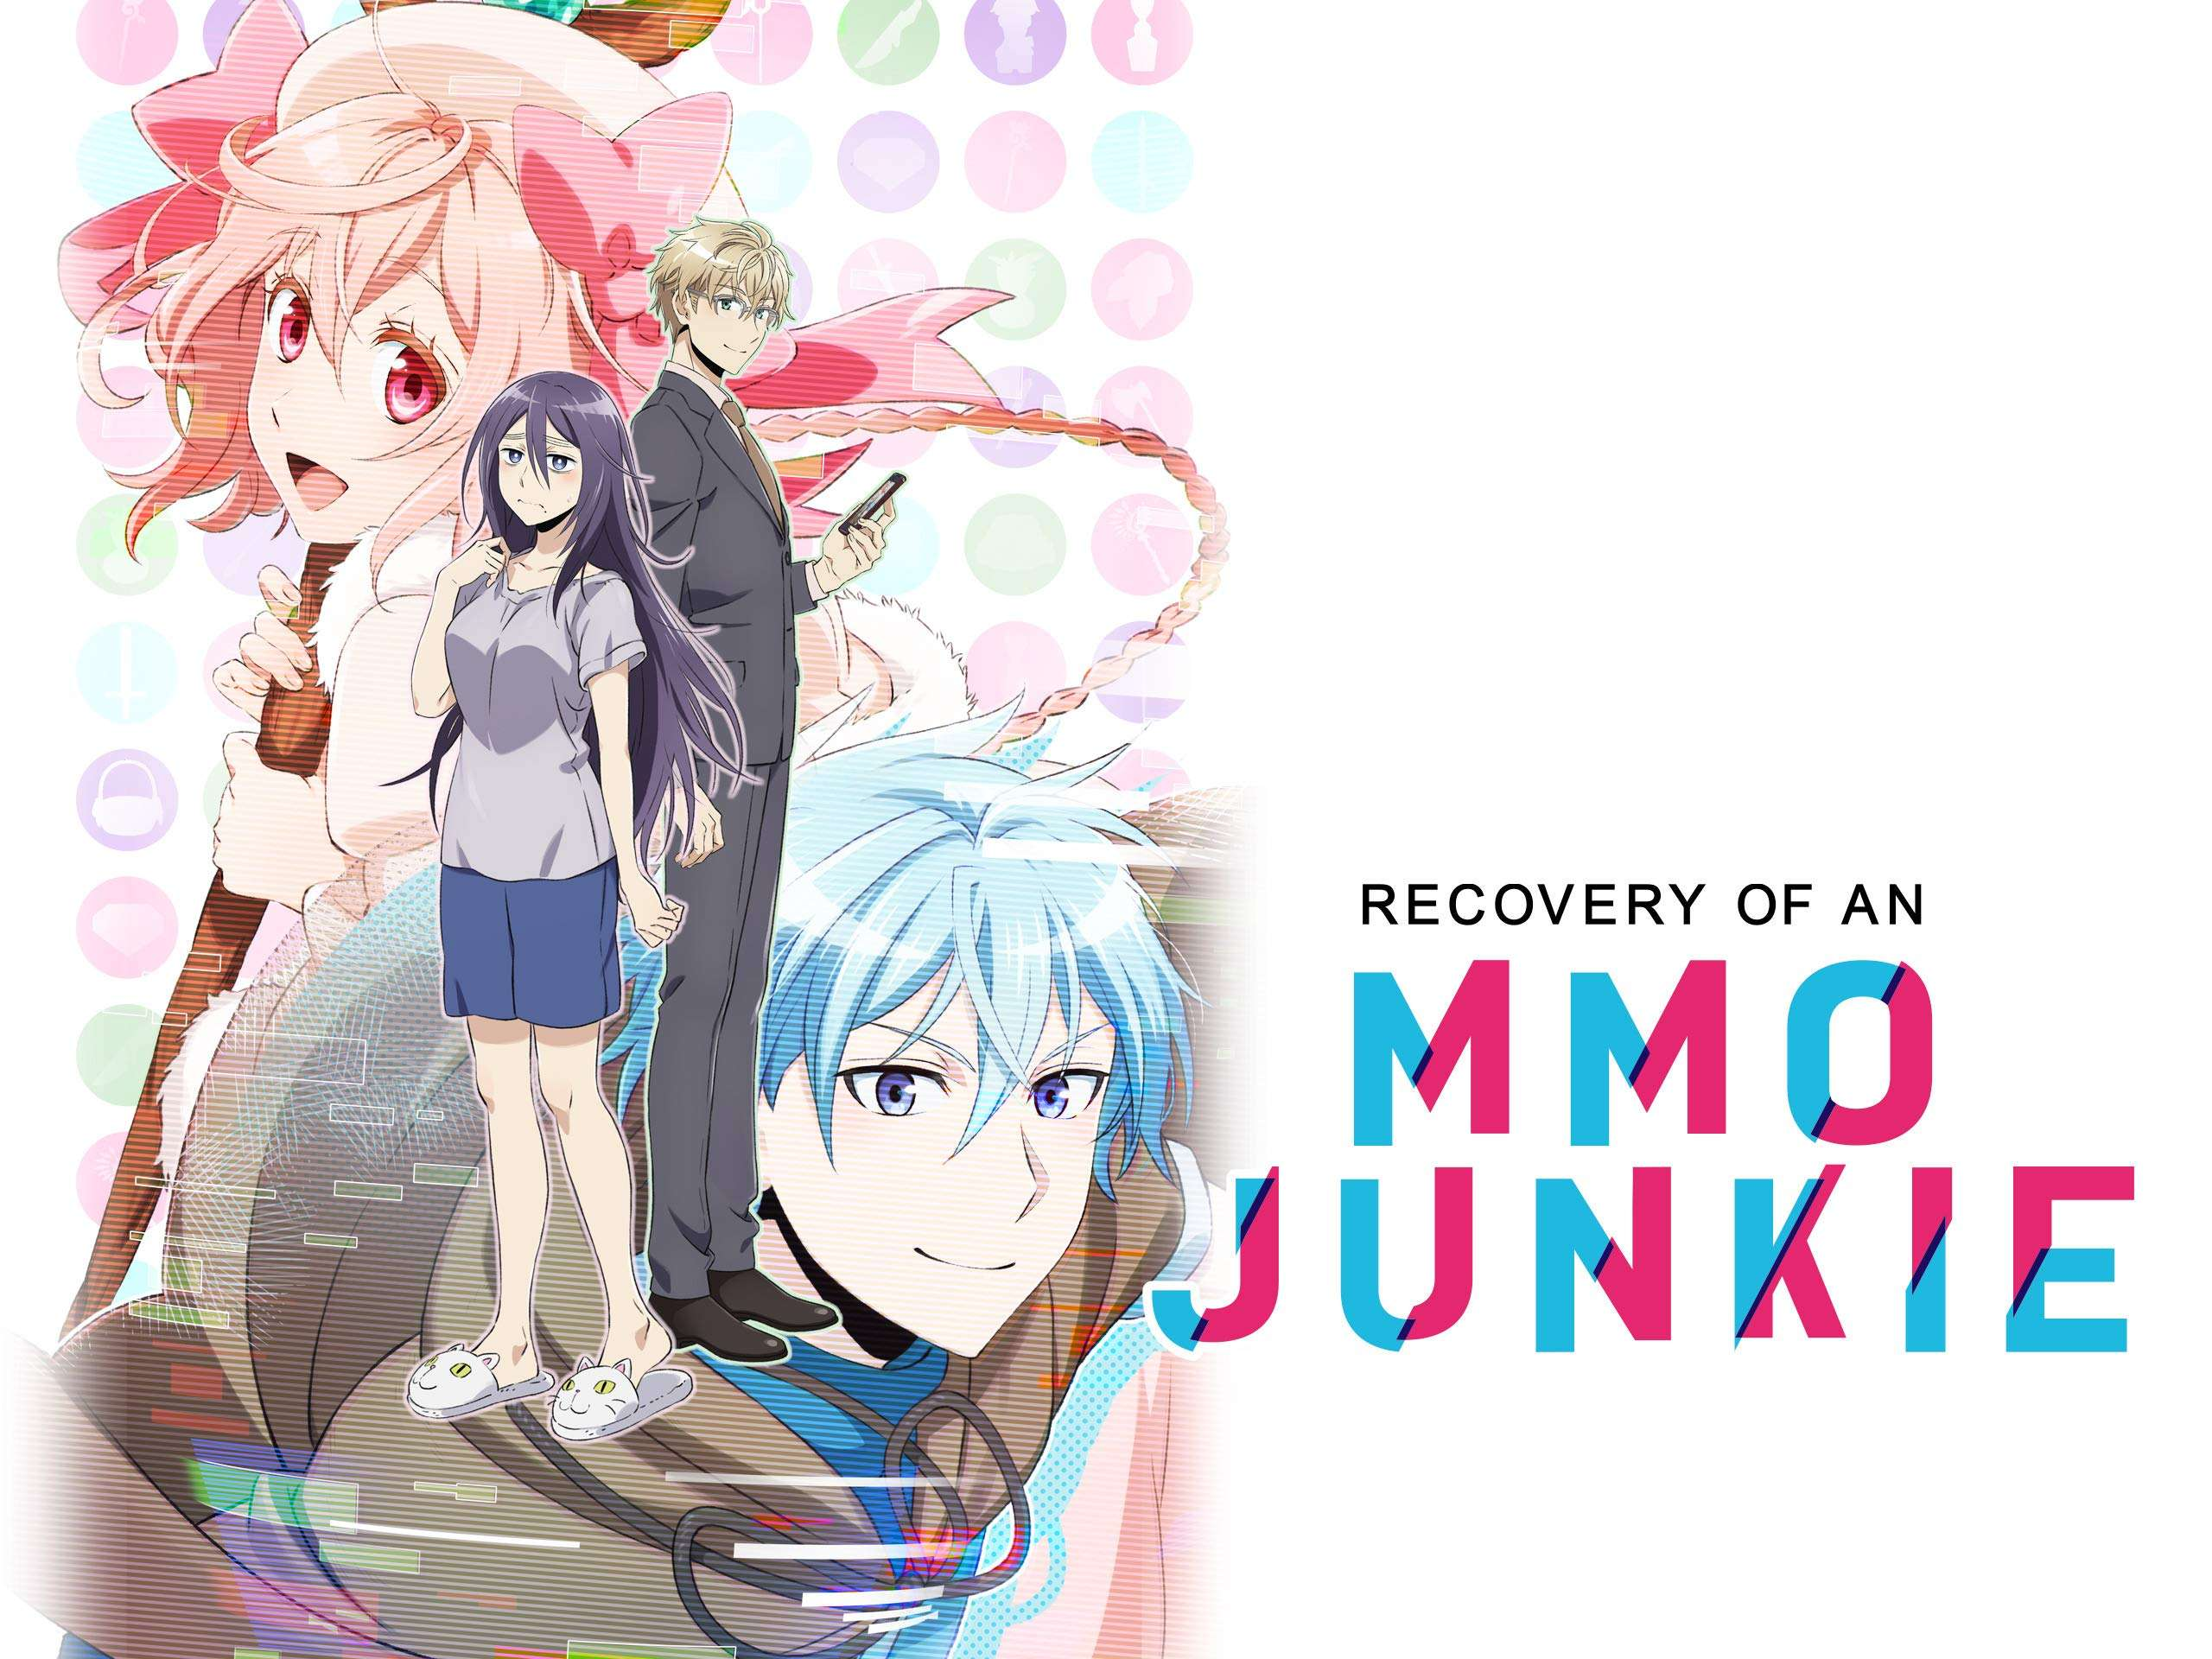 Recovery of an MMO Junkie Director Causes Controversy With Anti-Semitic Tweets